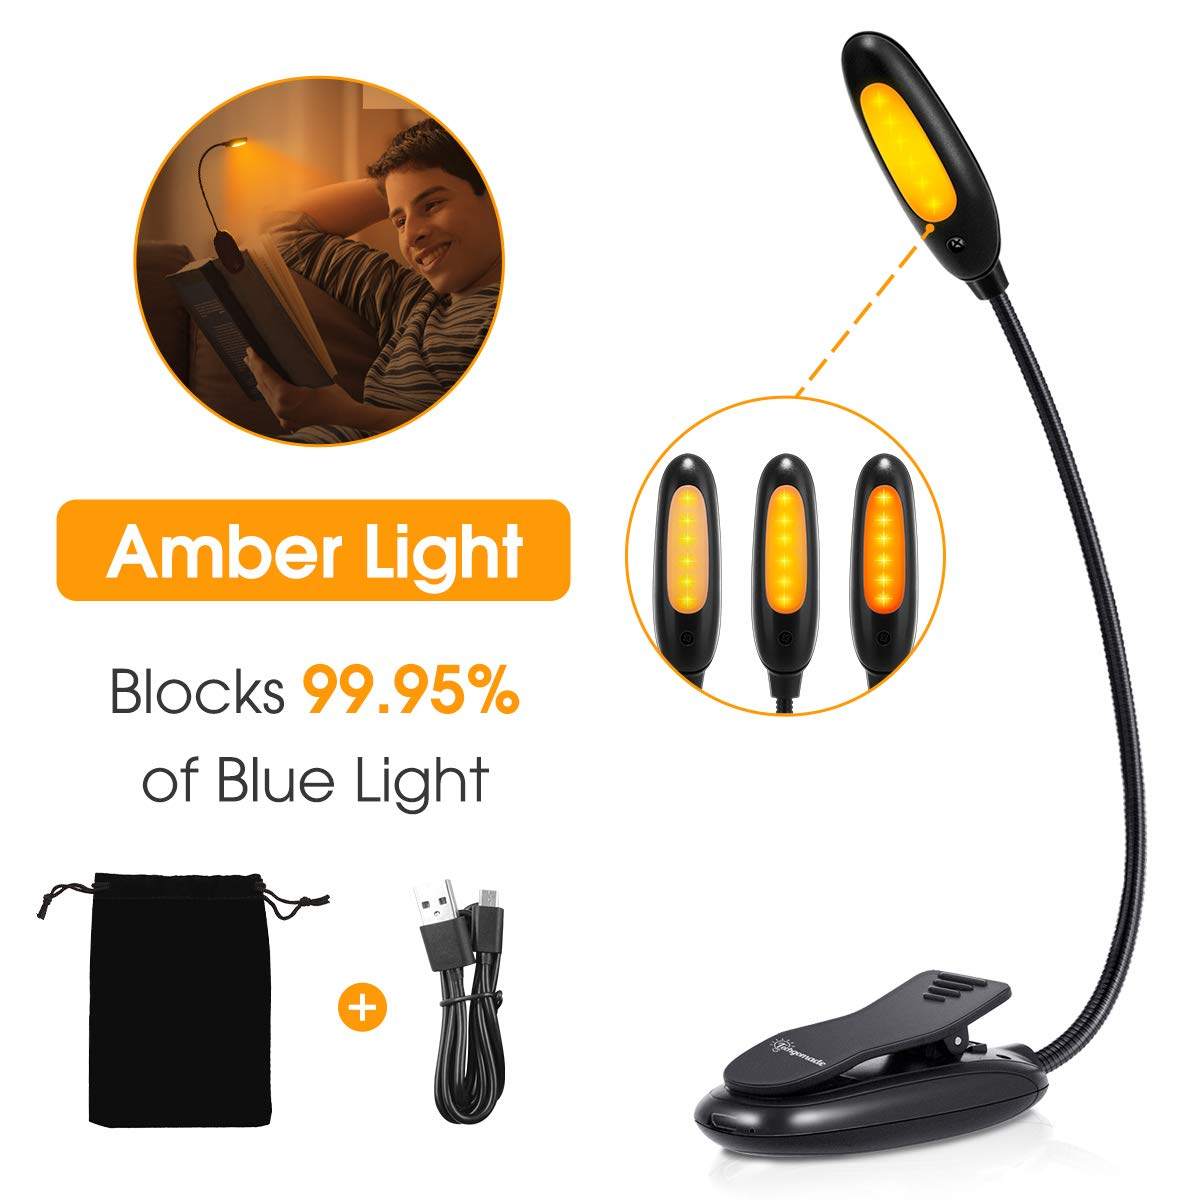 Amber Book Light, Blue Light Blocking Book Lamp, Techgomade Rechargeable Clip-On Reading Light, 1600K Warm LEDs for Reading in Bed, 3 Brightness, Eye-Protection Night Lamp for Kids, Bookworm, Kindle